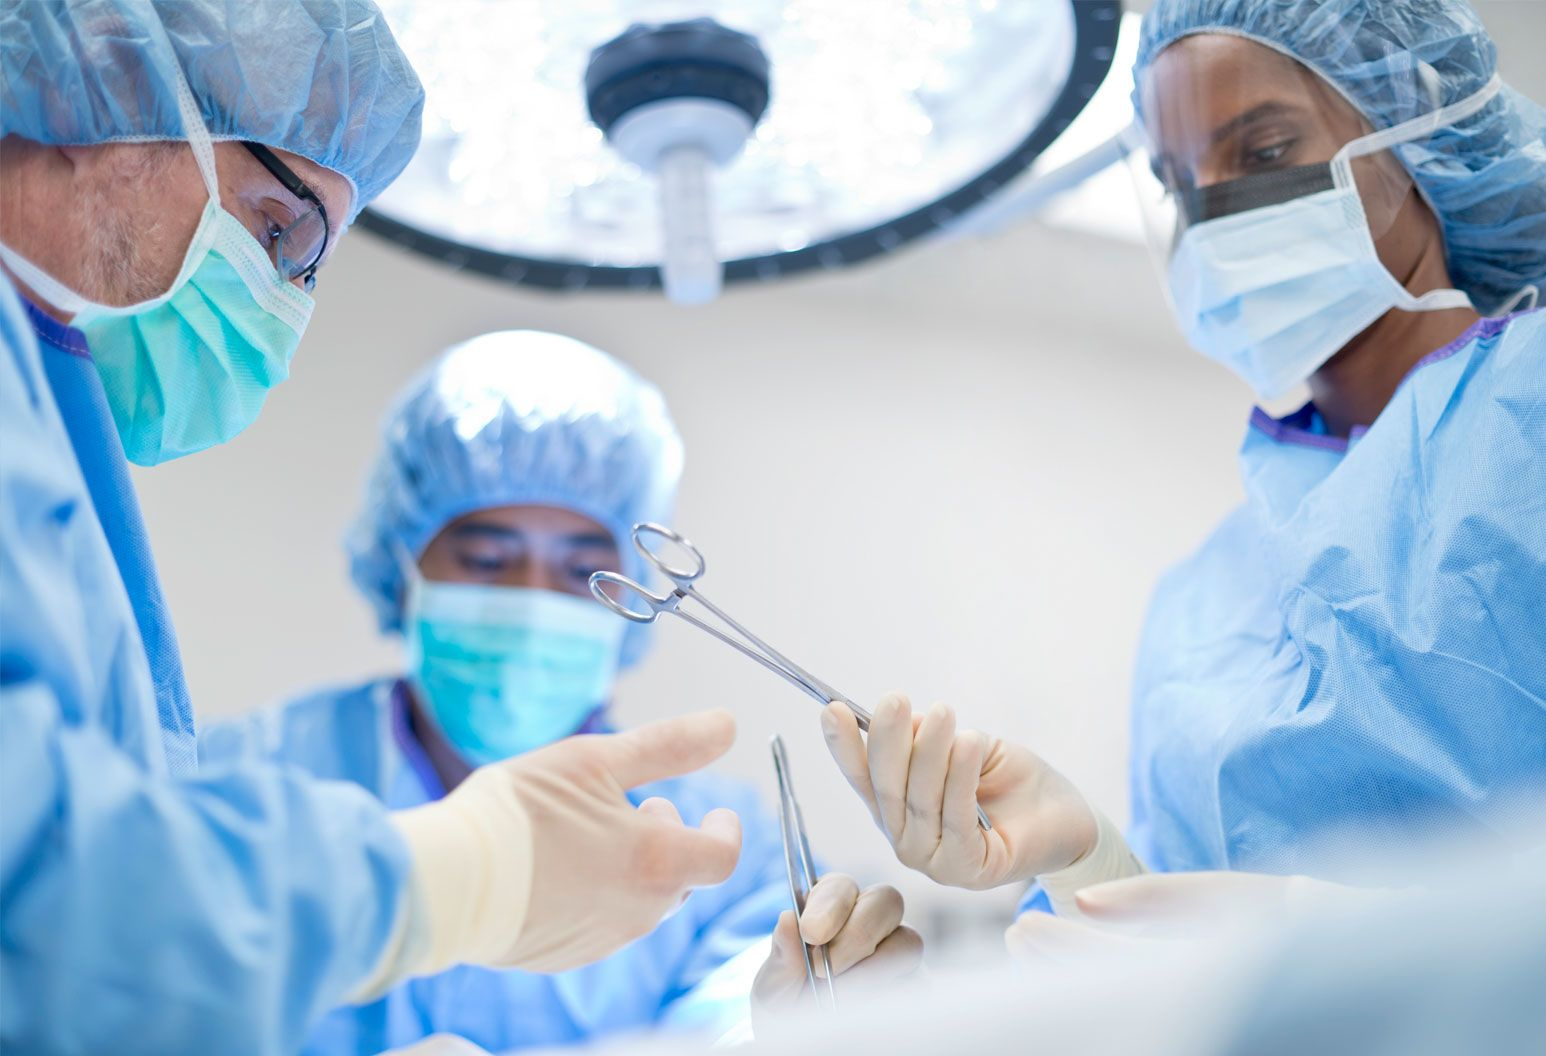 Three doctors wearing surgical gowns, masks, and gloves, are in an operating room standing over a patient as they perform surgery